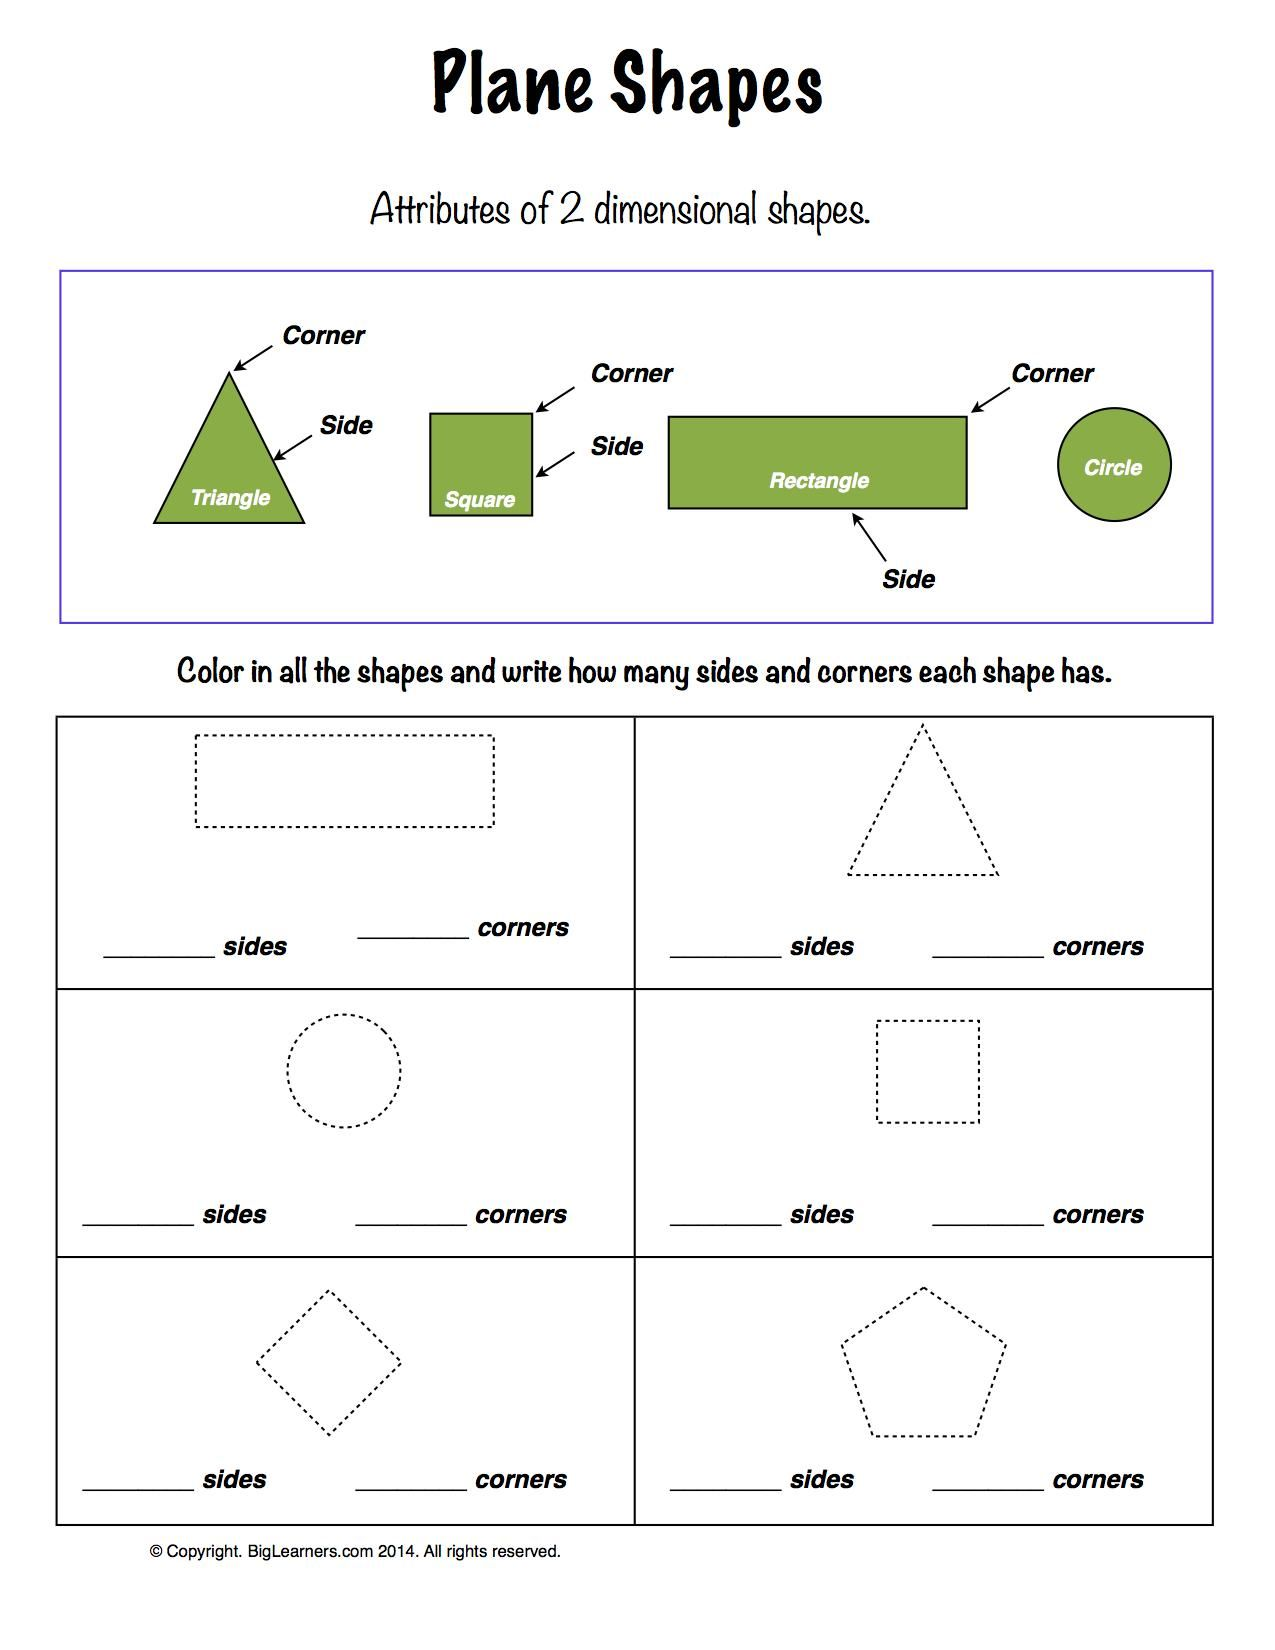 Worksheets Plane Shapes Worksheets worksheet plane shapes learn about the attributes of shapes